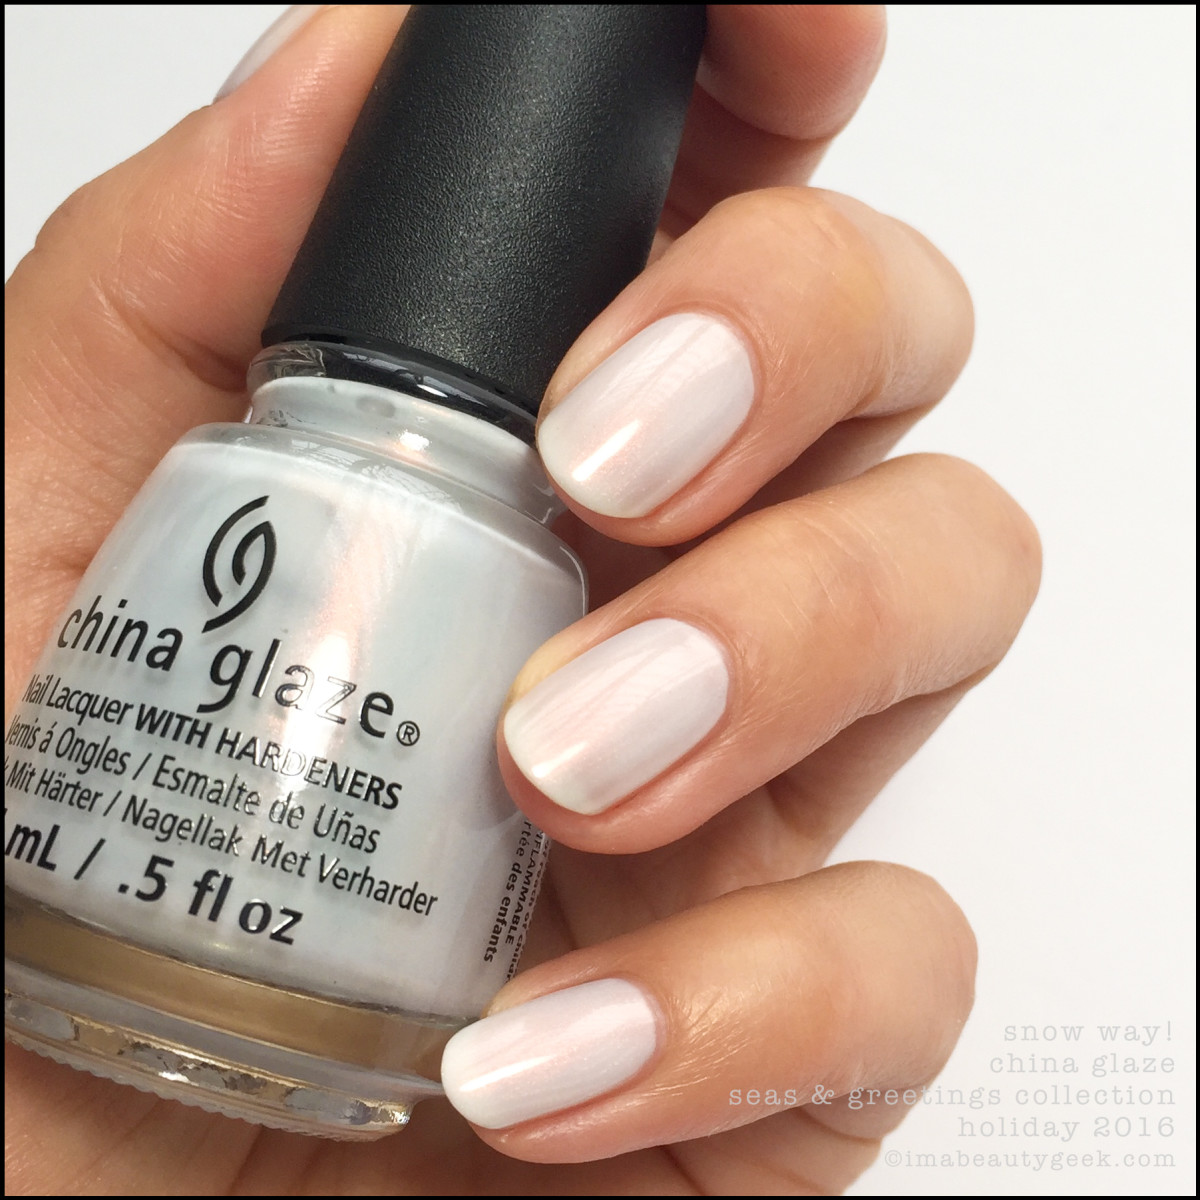 China Glaze Snow Way_China Glaze Seas and Greetings Collection Swatches Review Holiday 2016